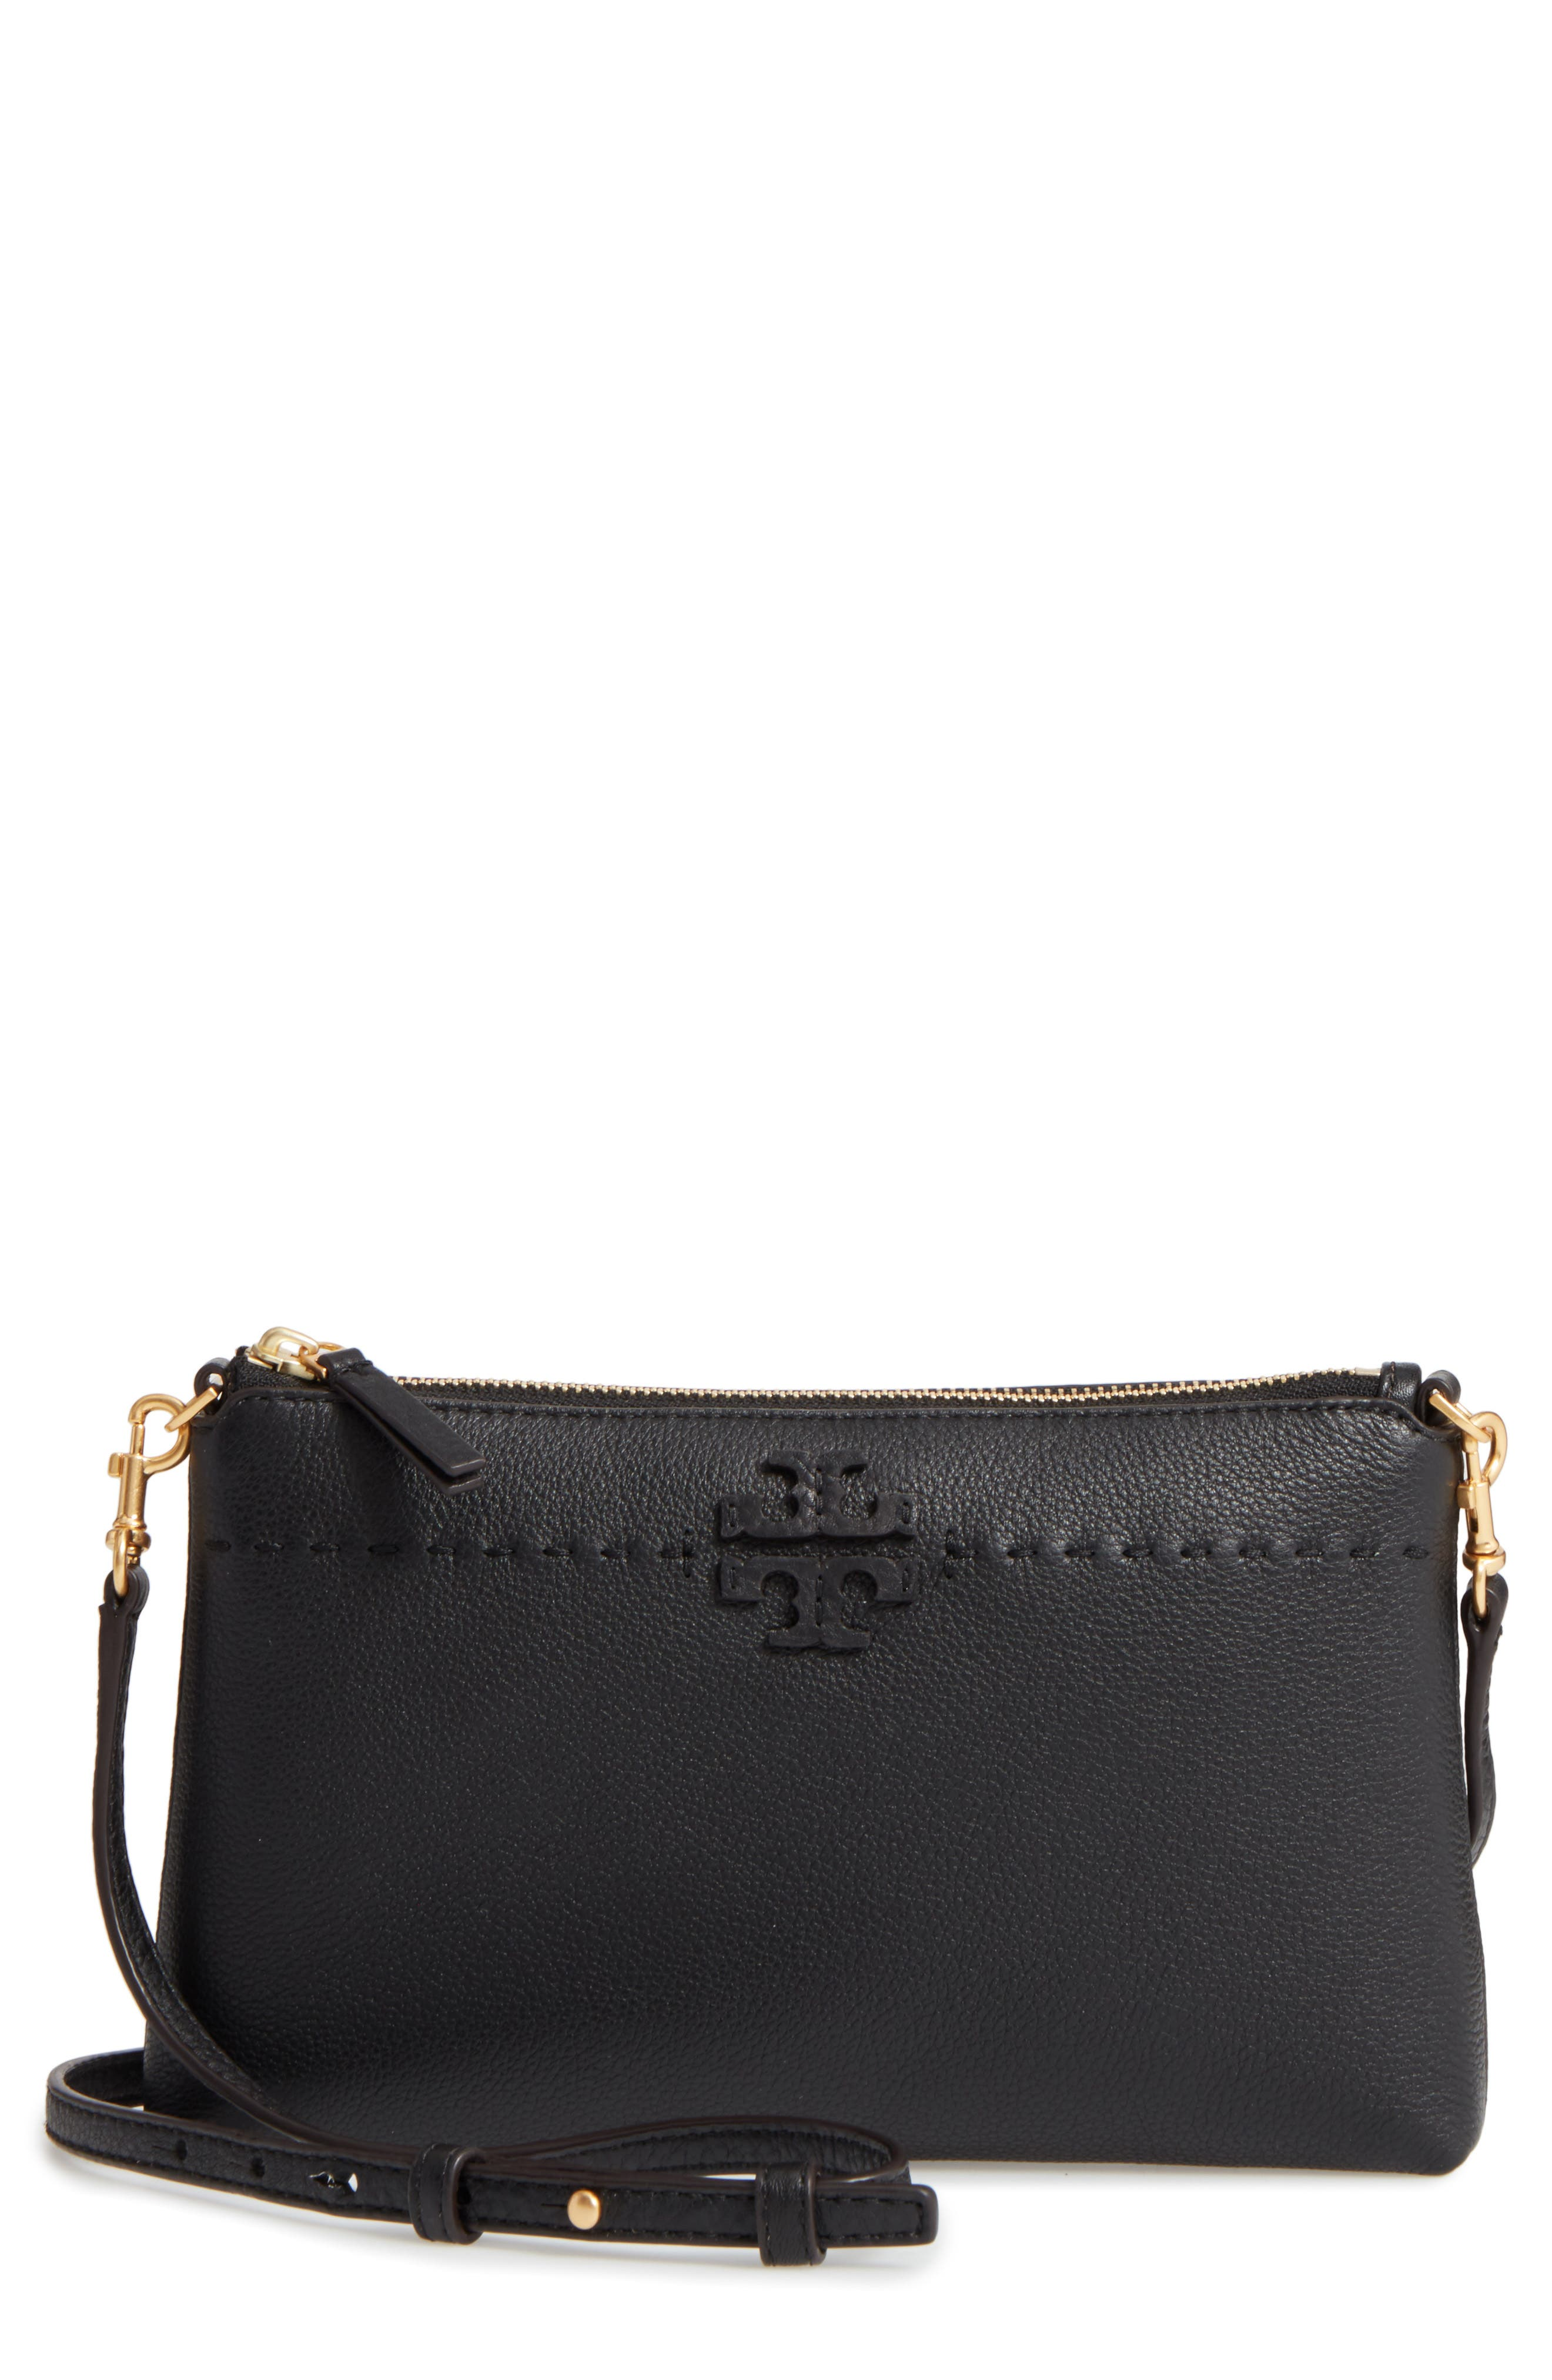 McGraw Leather Crossbody Pouch,                         Main,                         color, Black